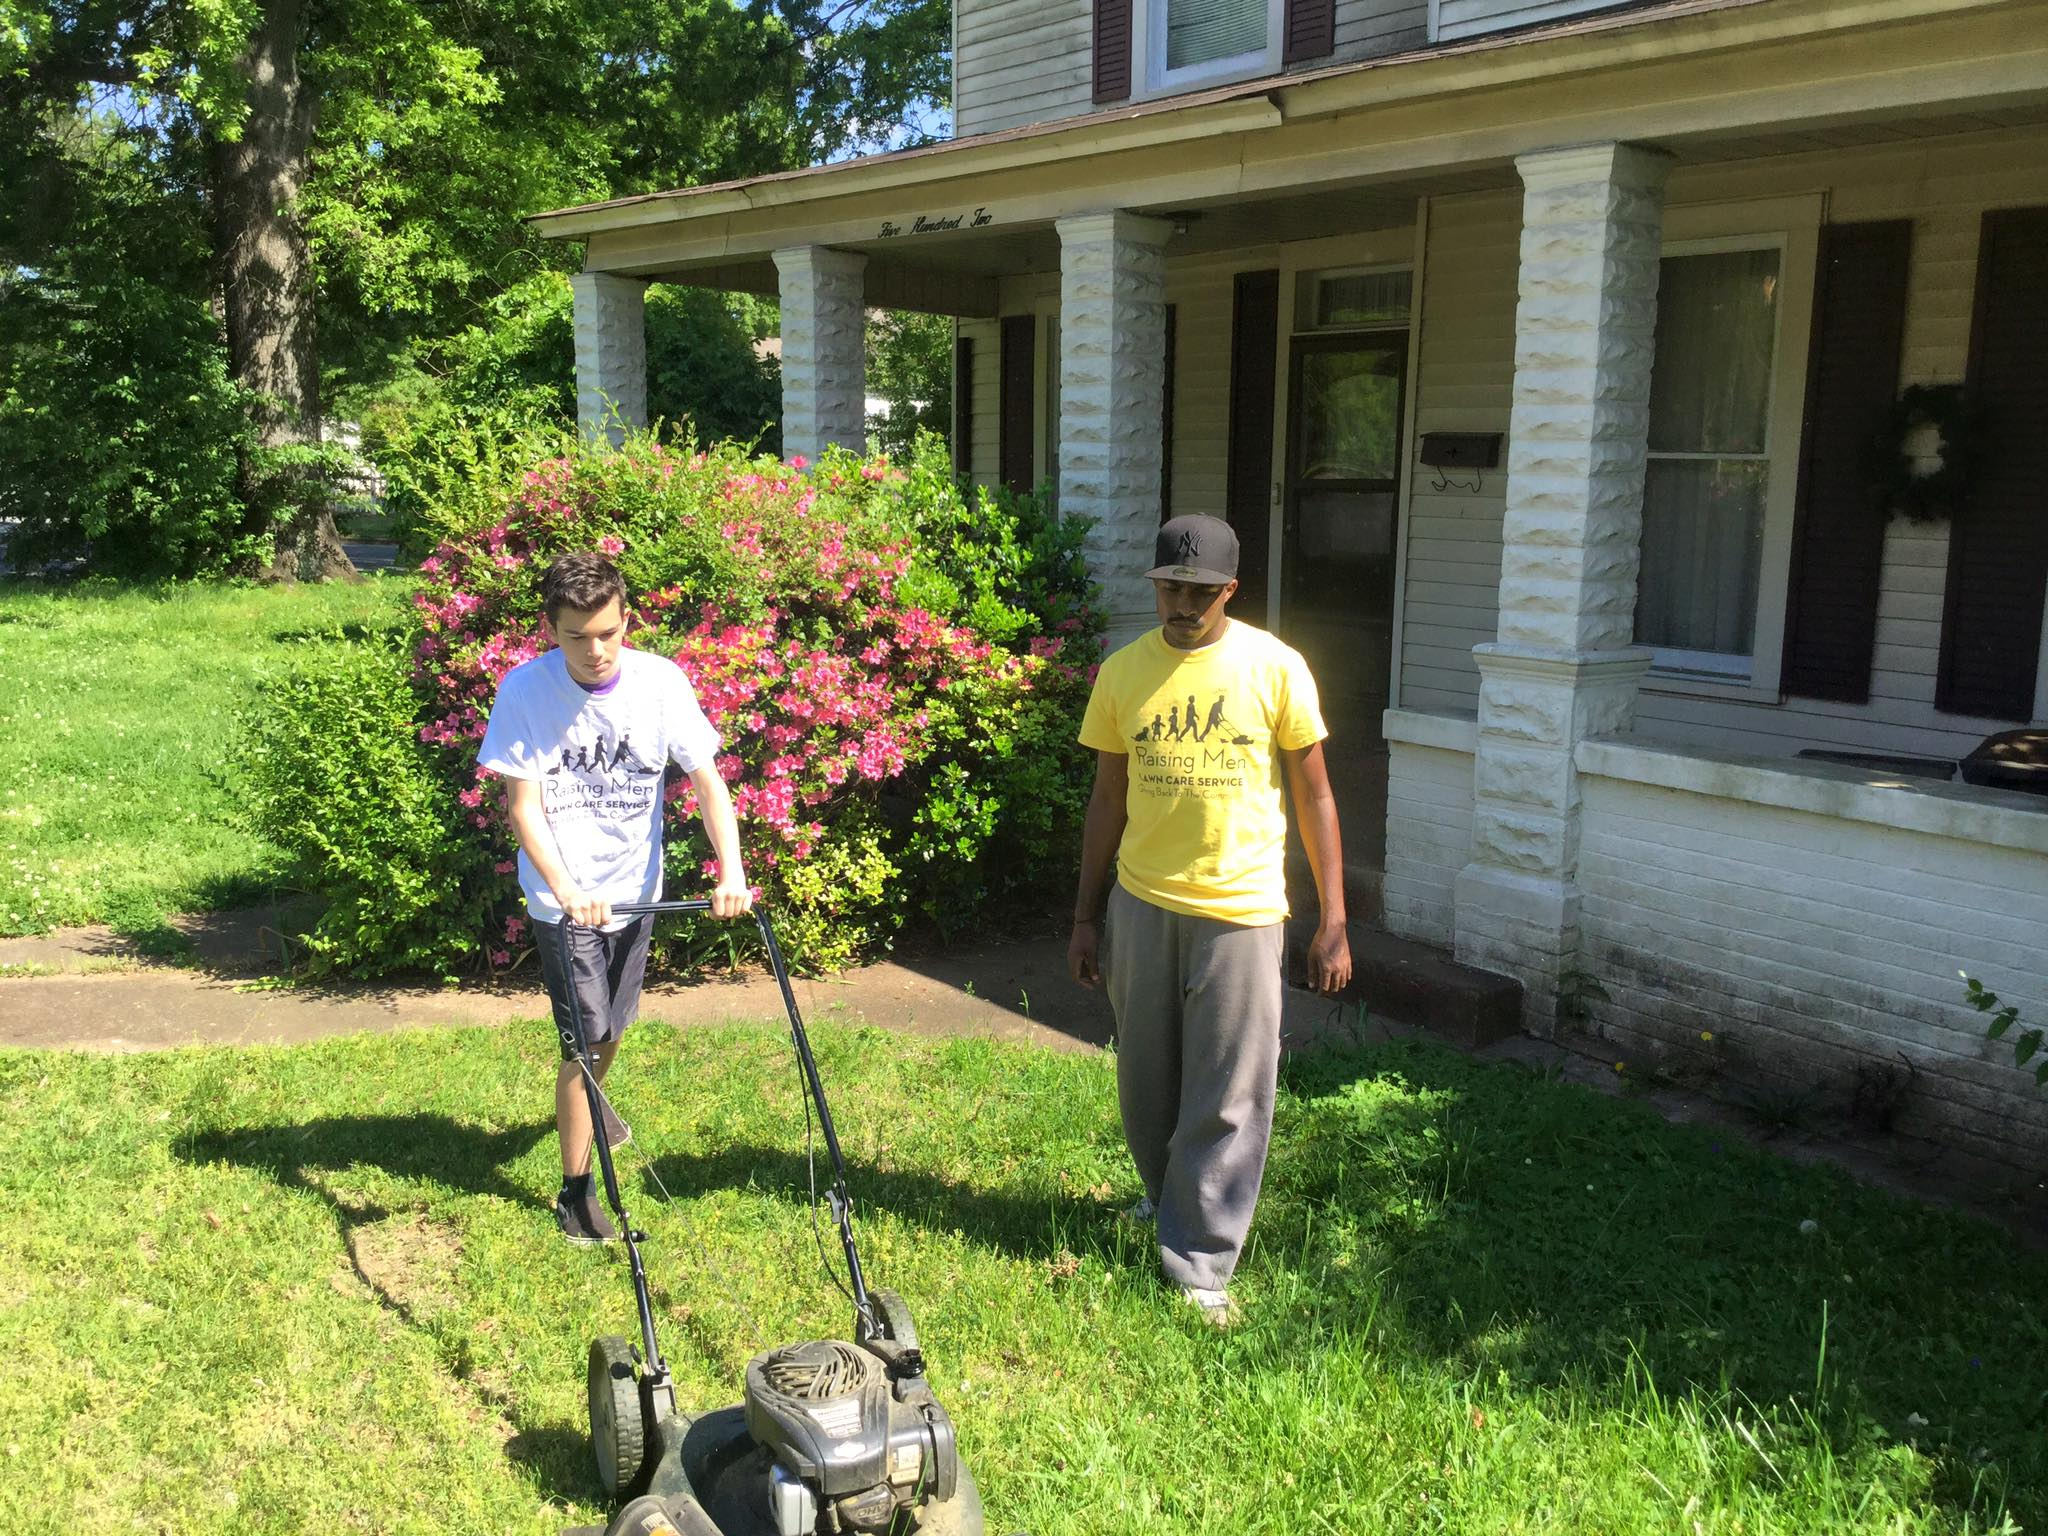 This lawn care company is doing so much more than just mowing lawns and trimming hedges. They offer their services for free to those who can't care for their lawns themselves: the elderly, disabled, and single moms.